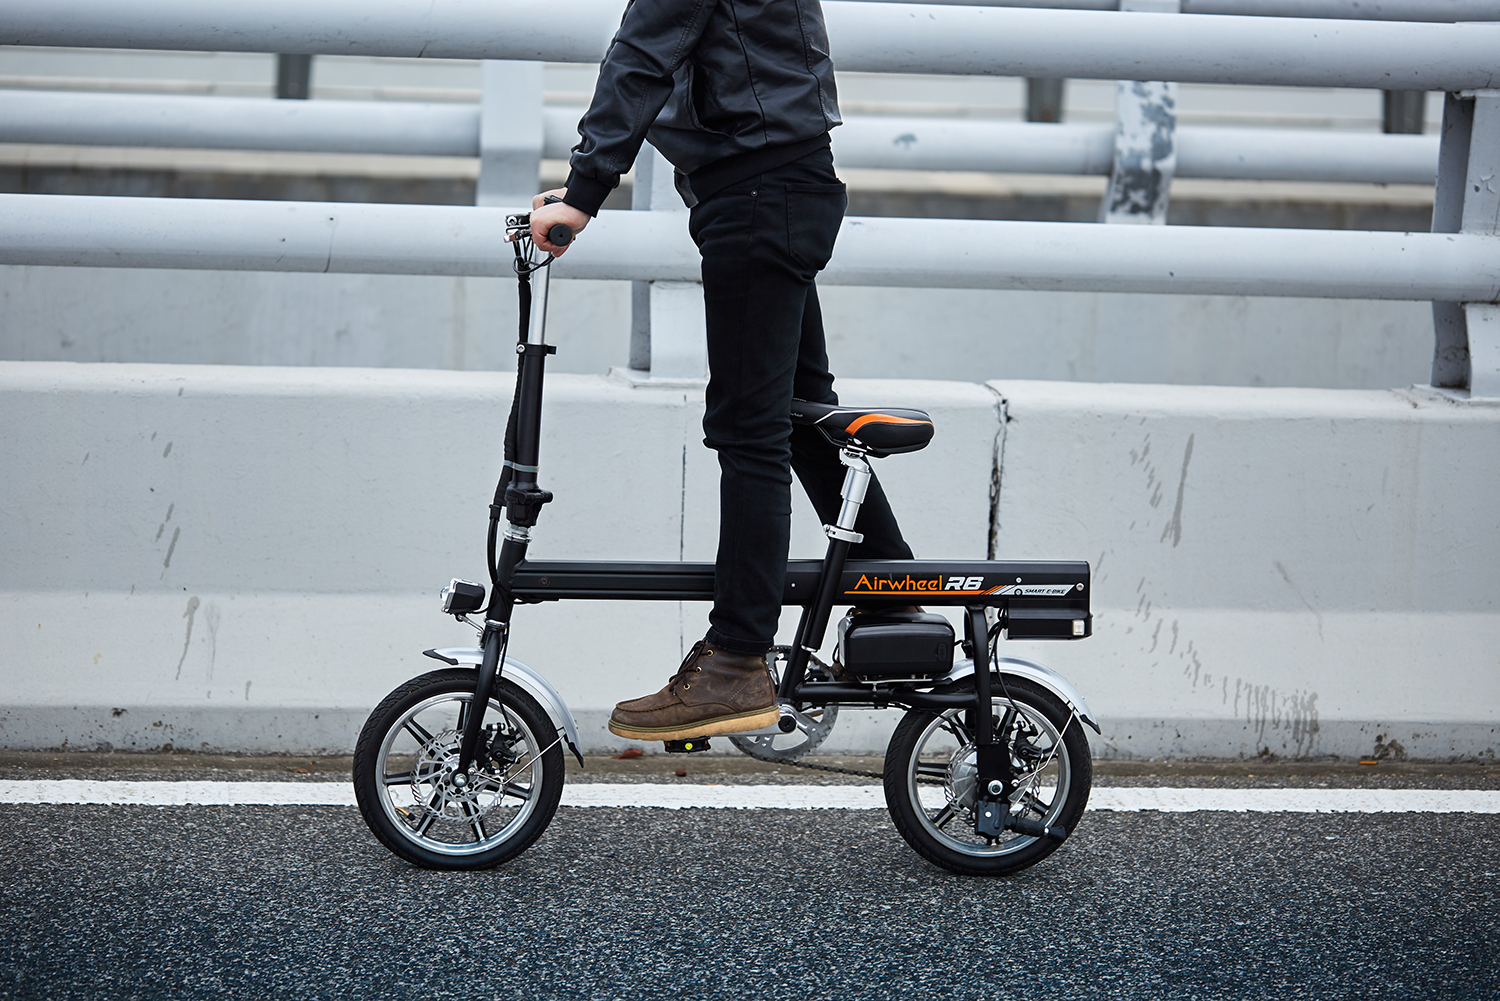 Airwheel R6 smart assist electric bike